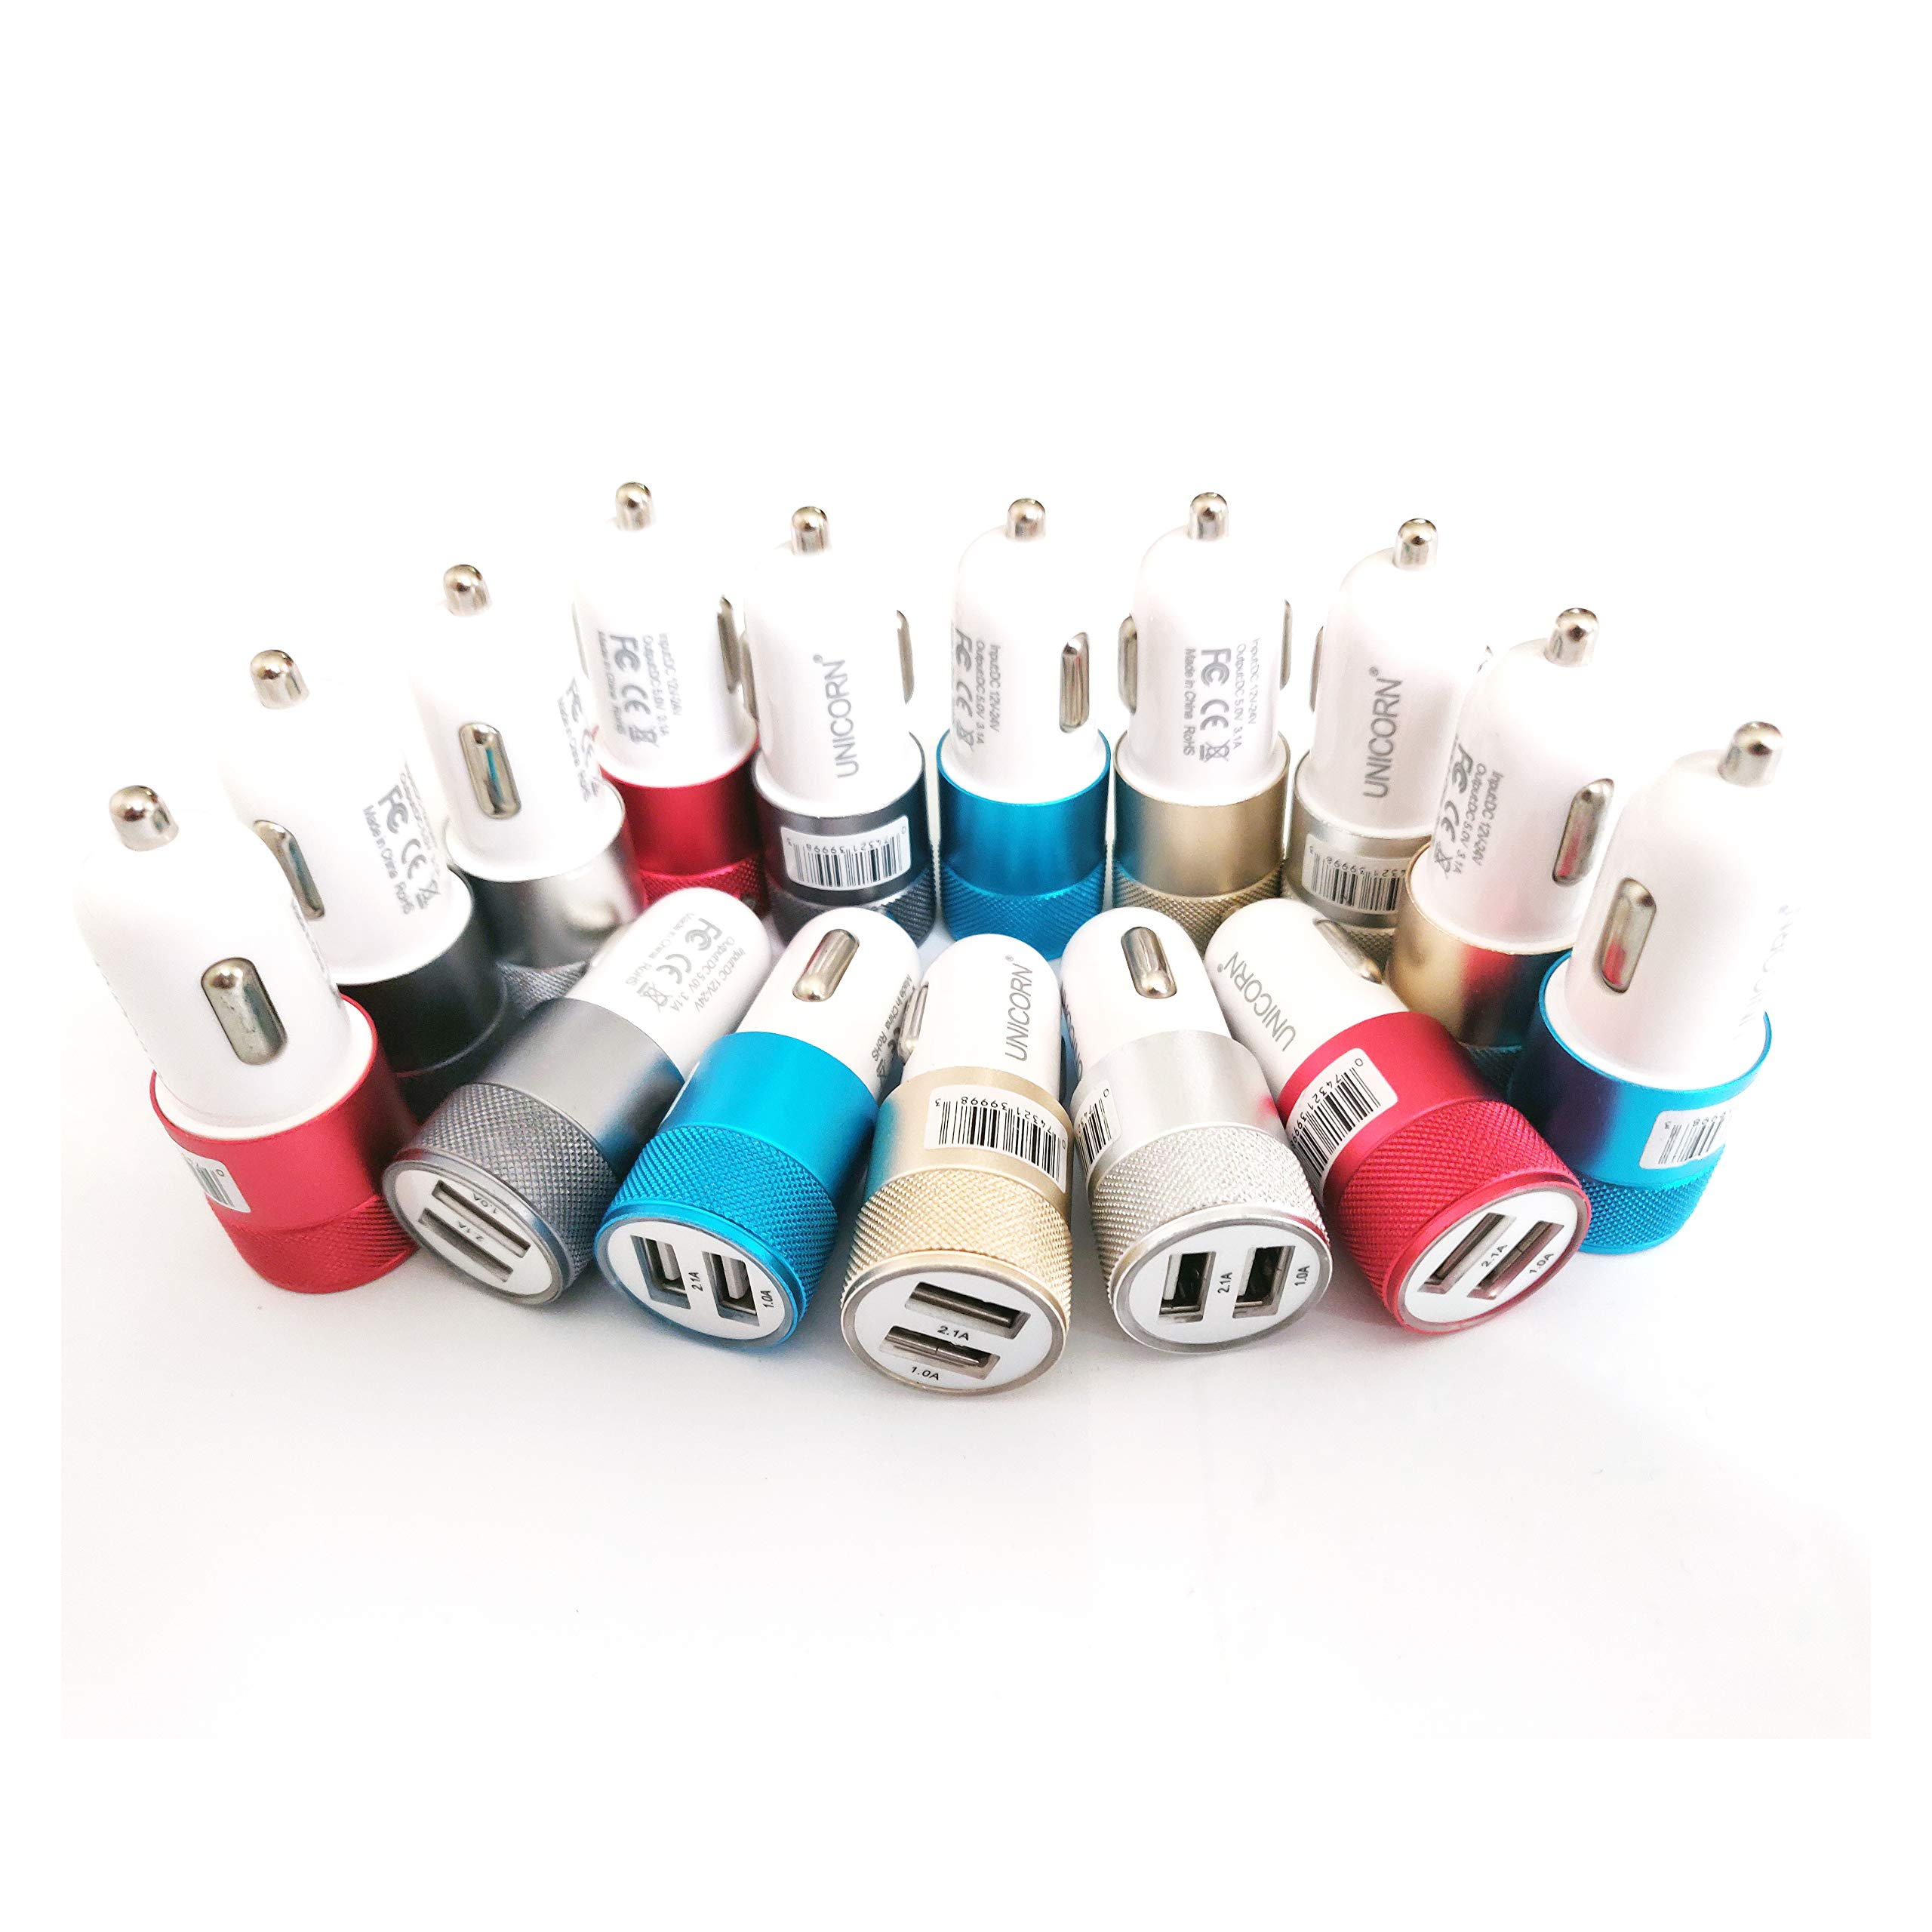 USB Car Charger Dual Port Fast Charge Bulk Lot Wholesale Chargers by UNiCORN Trade (50 Packs) by Unicorn Trade